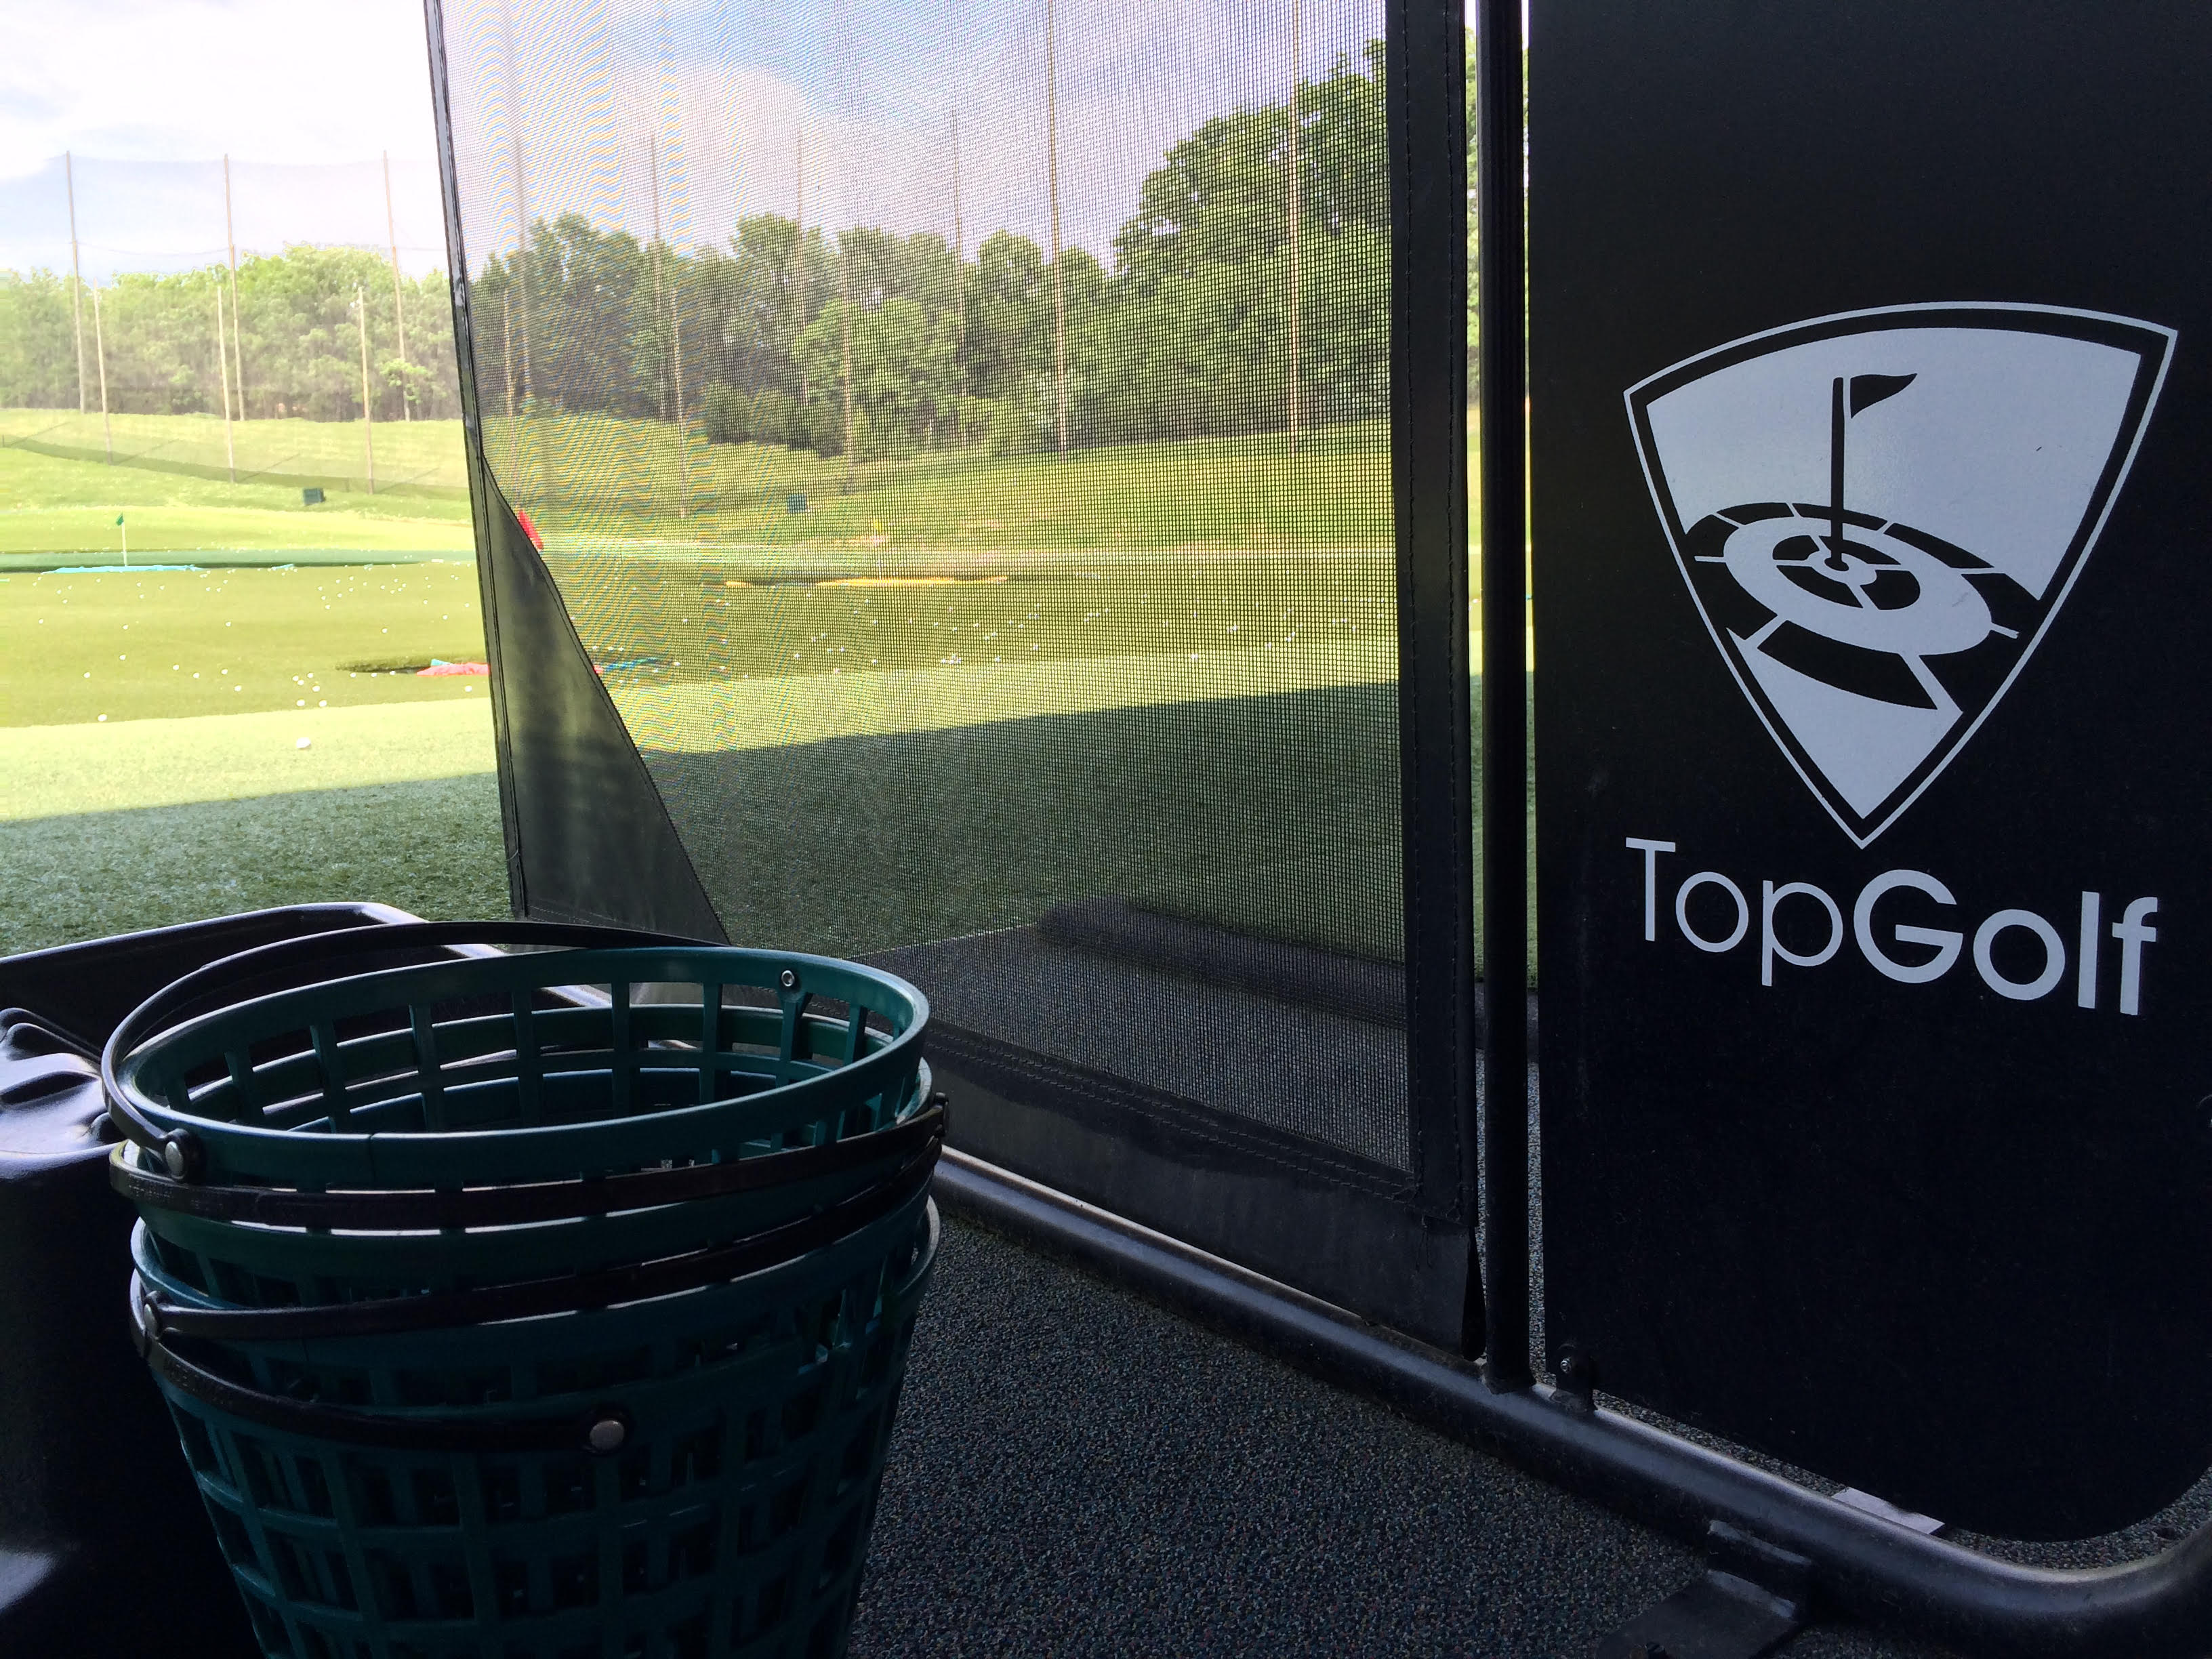 Military, first responders receive discounts, donations from TopGolf